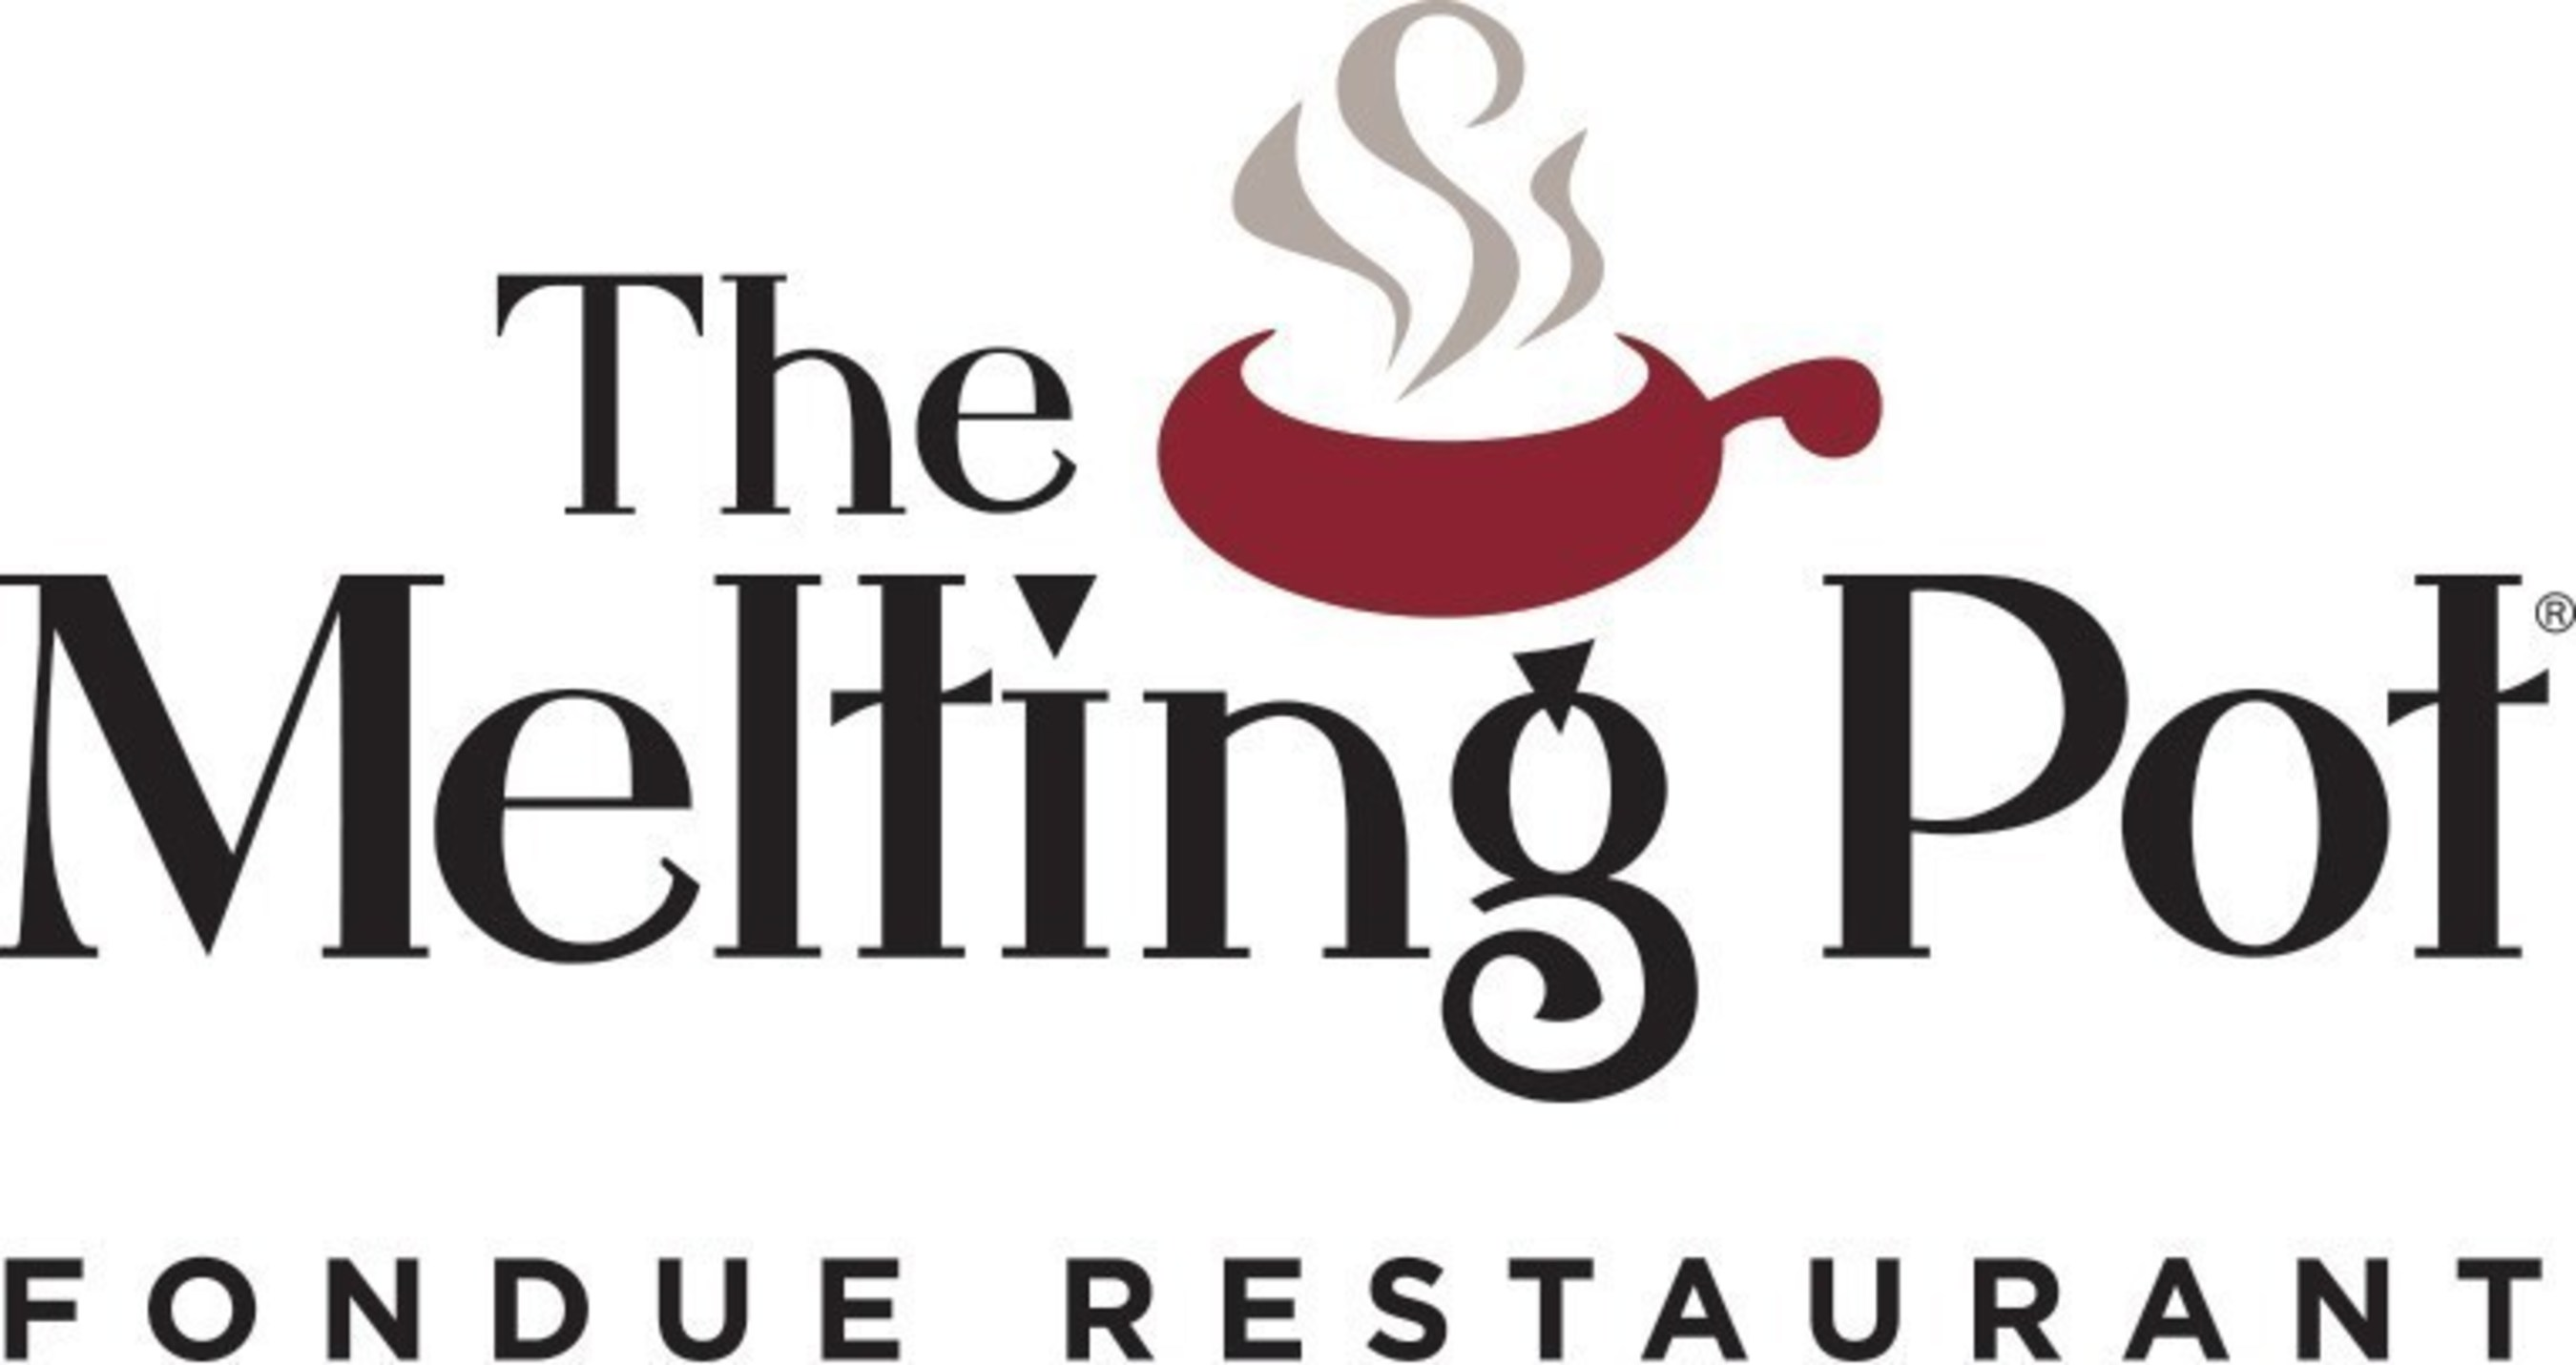 The Melting Pot Restaurants, Inc.